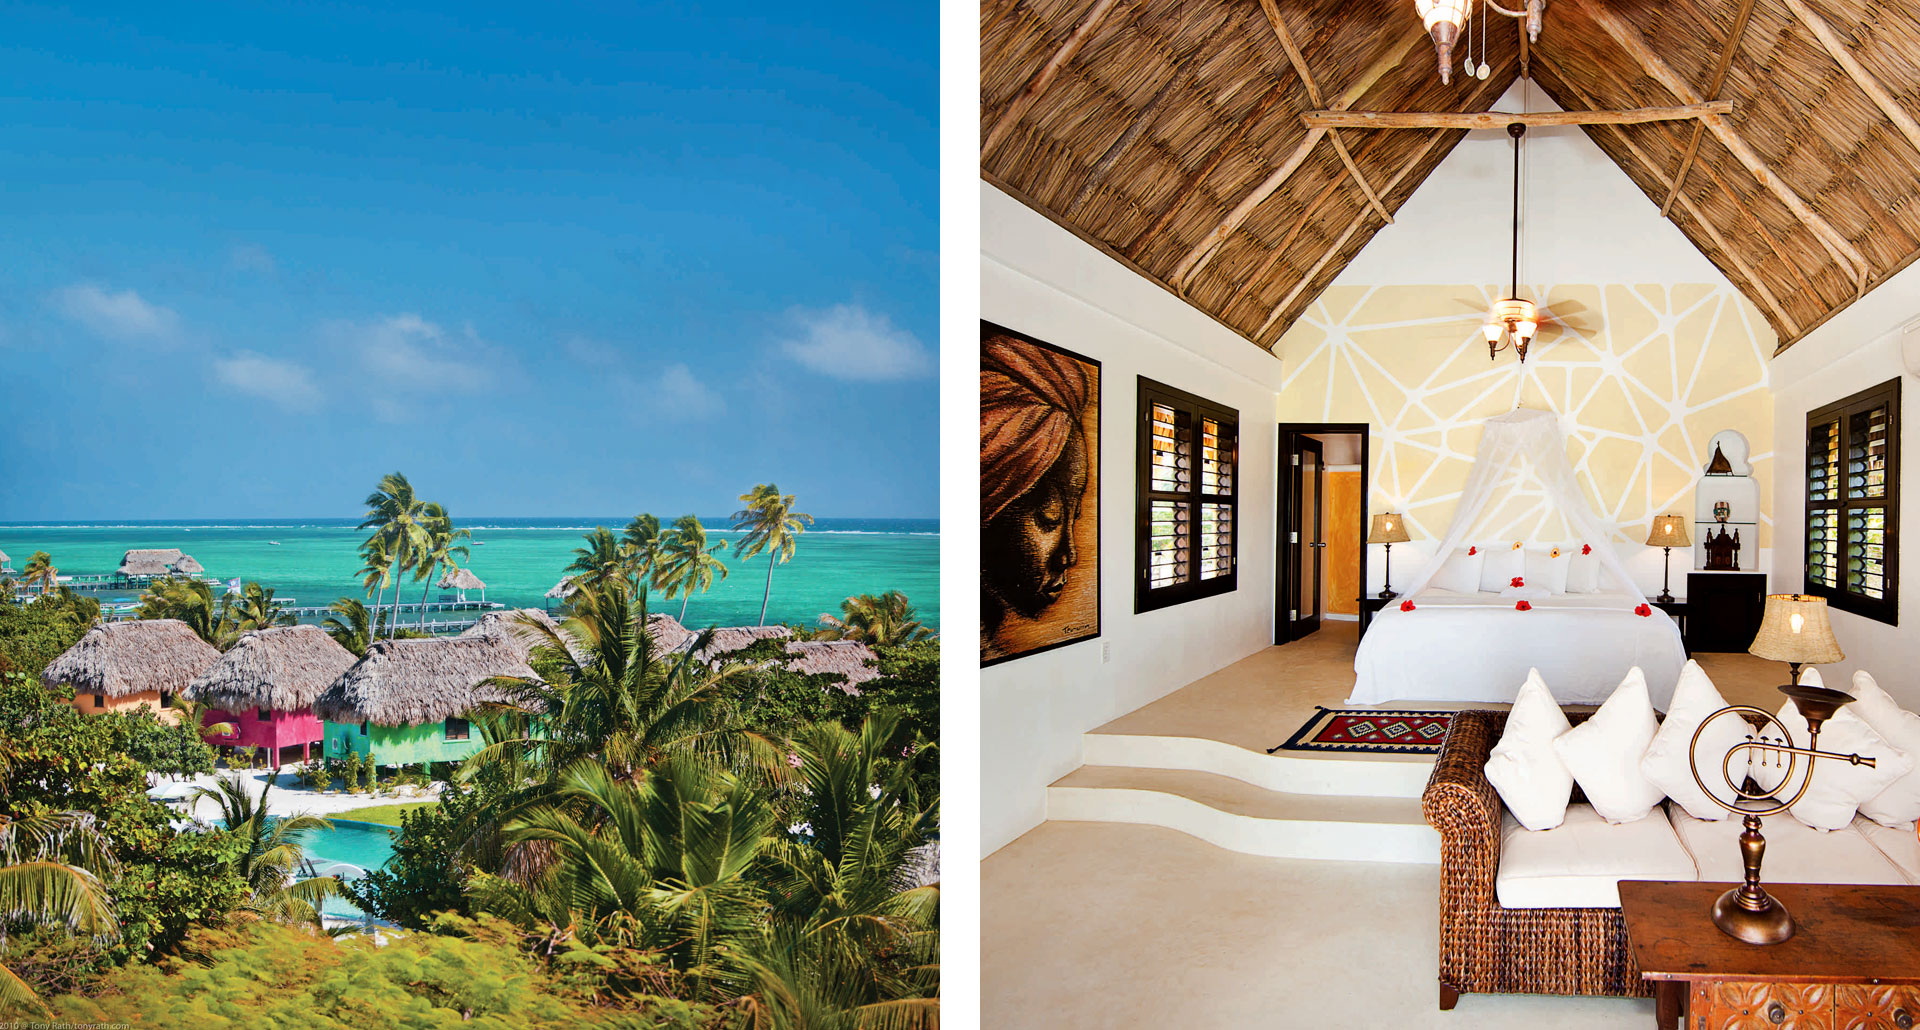 Matachica Resort & Spa - boutique hotel in Ambergris Caye